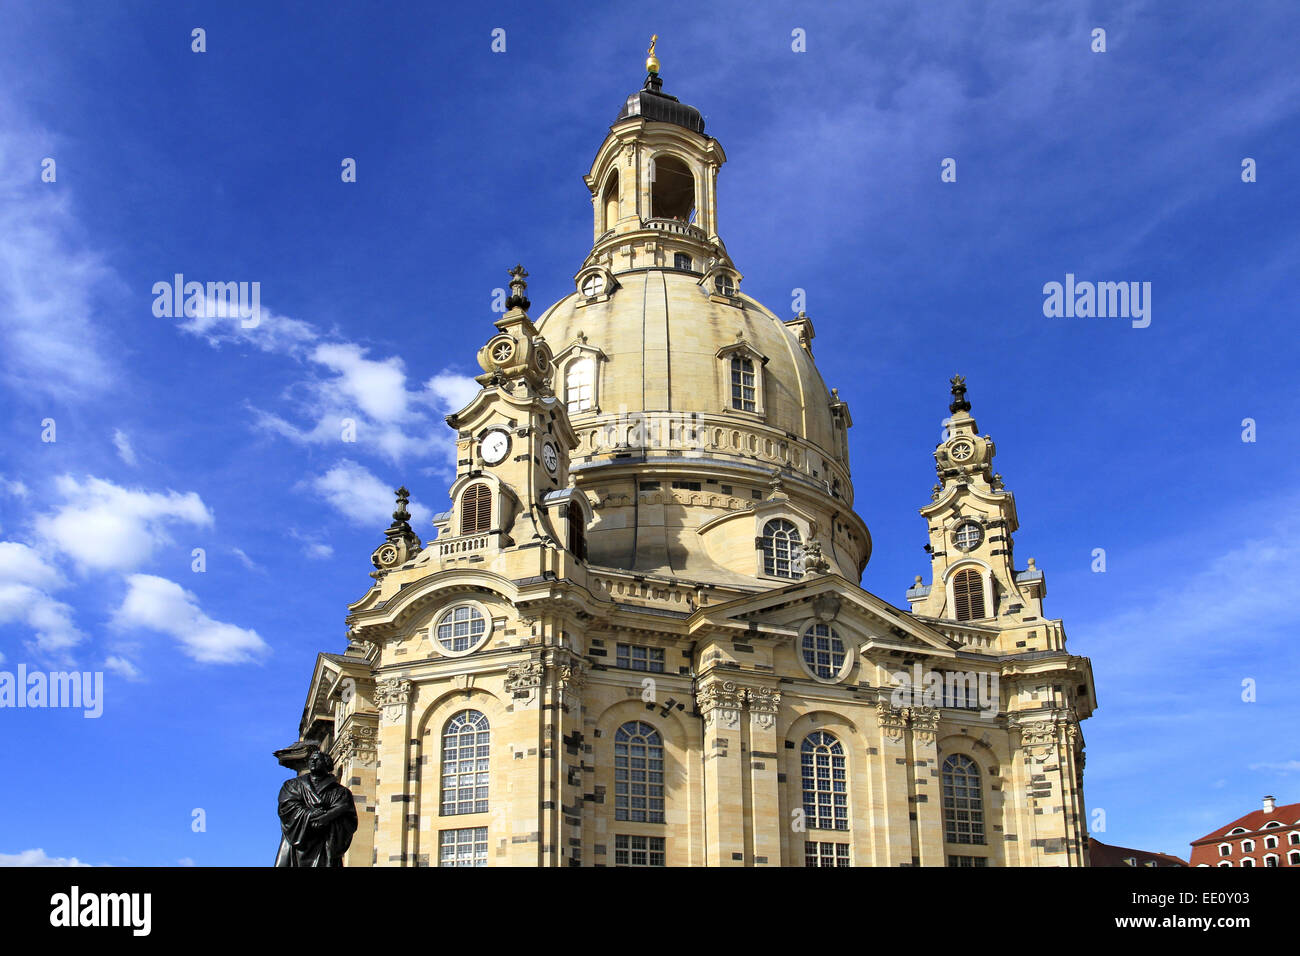 deutschland sachsen dresden altstadt frauenkirche neumarkt stock photo 77467827 alamy. Black Bedroom Furniture Sets. Home Design Ideas